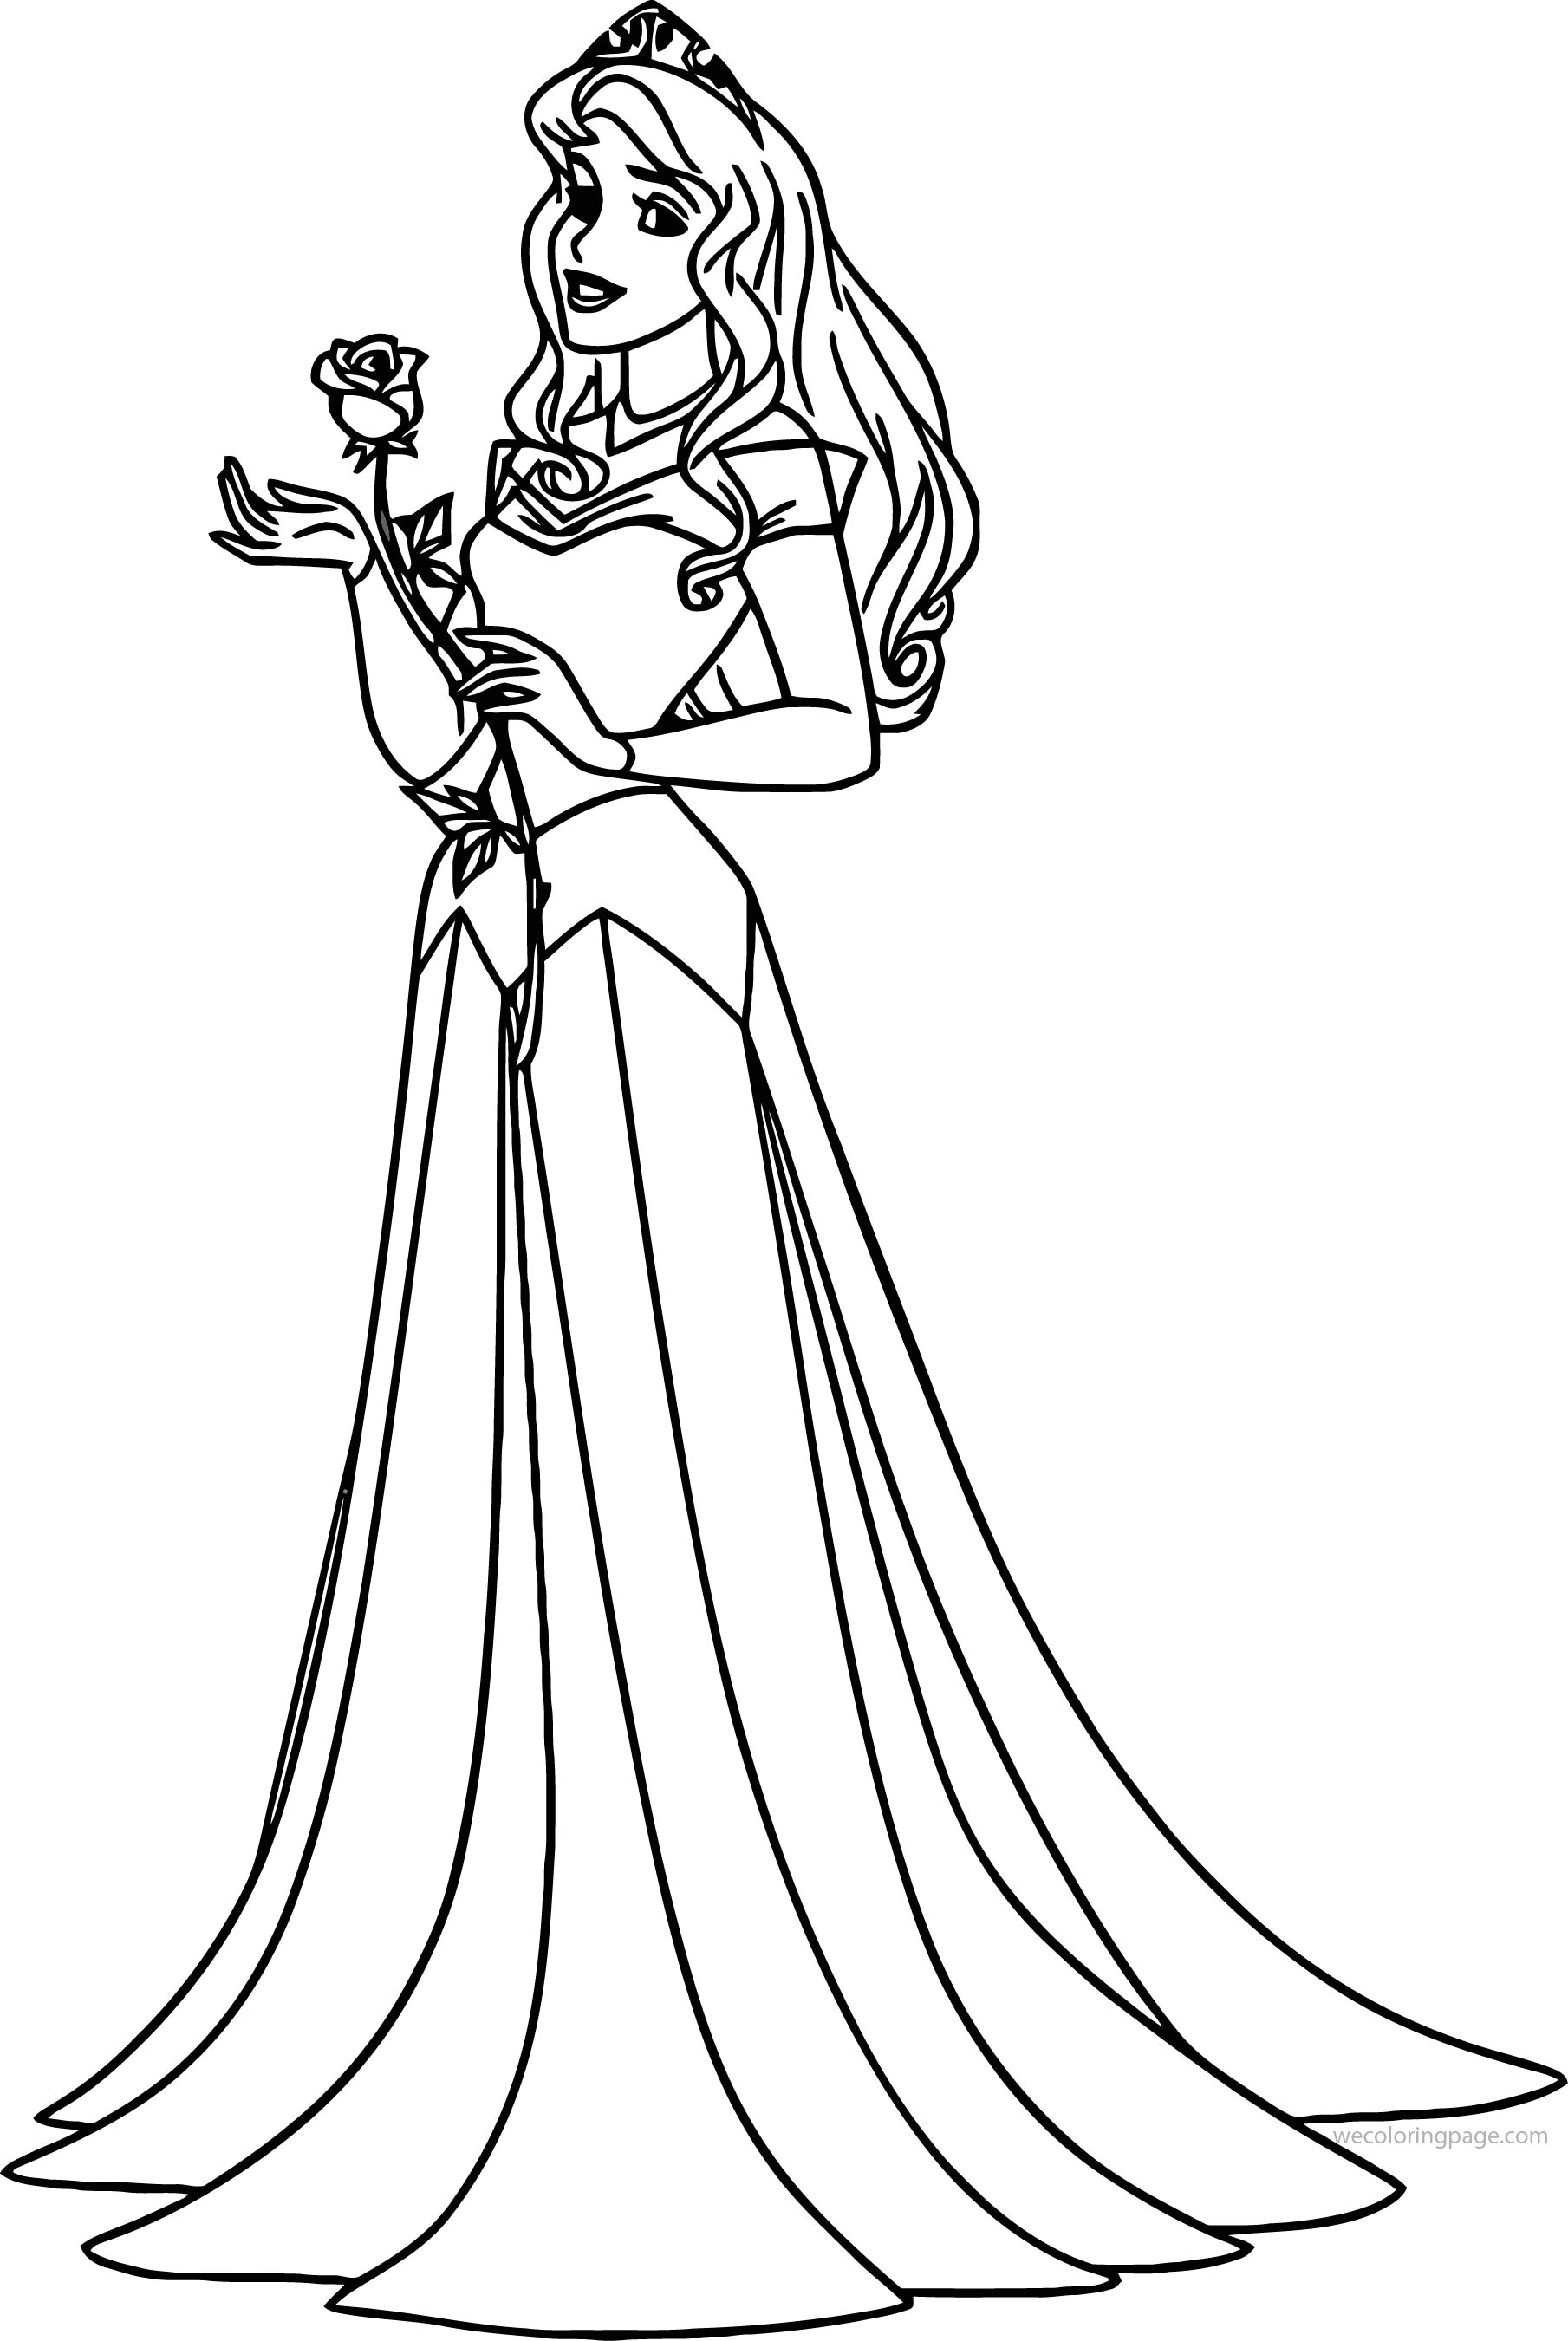 Disney Aurora Sleeping Beauty At Coloring Pages 21